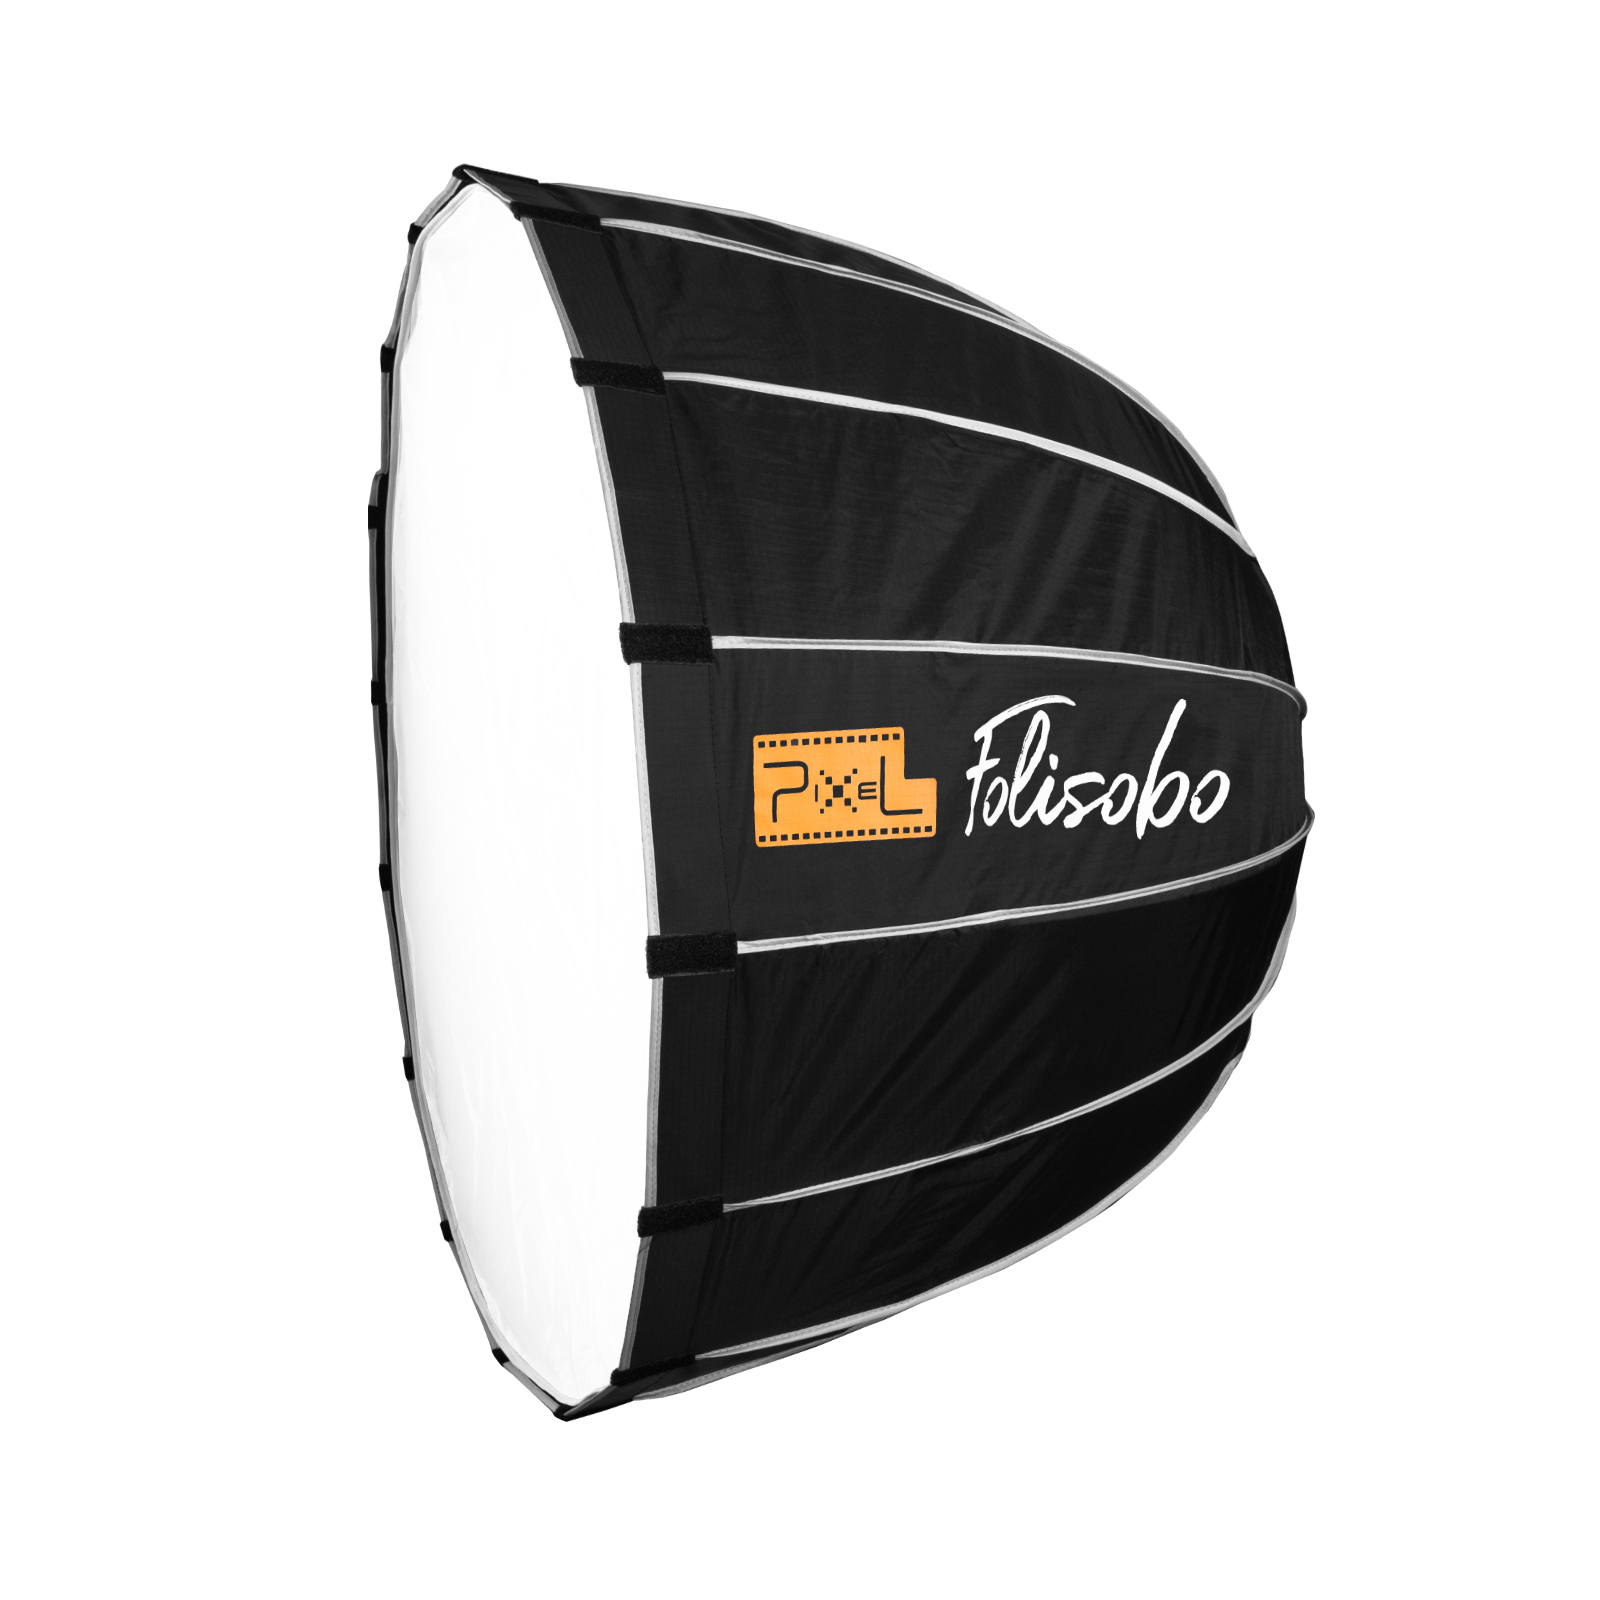 Pixel F90 LED Parabolic Softbox, soft light, delicate and even.